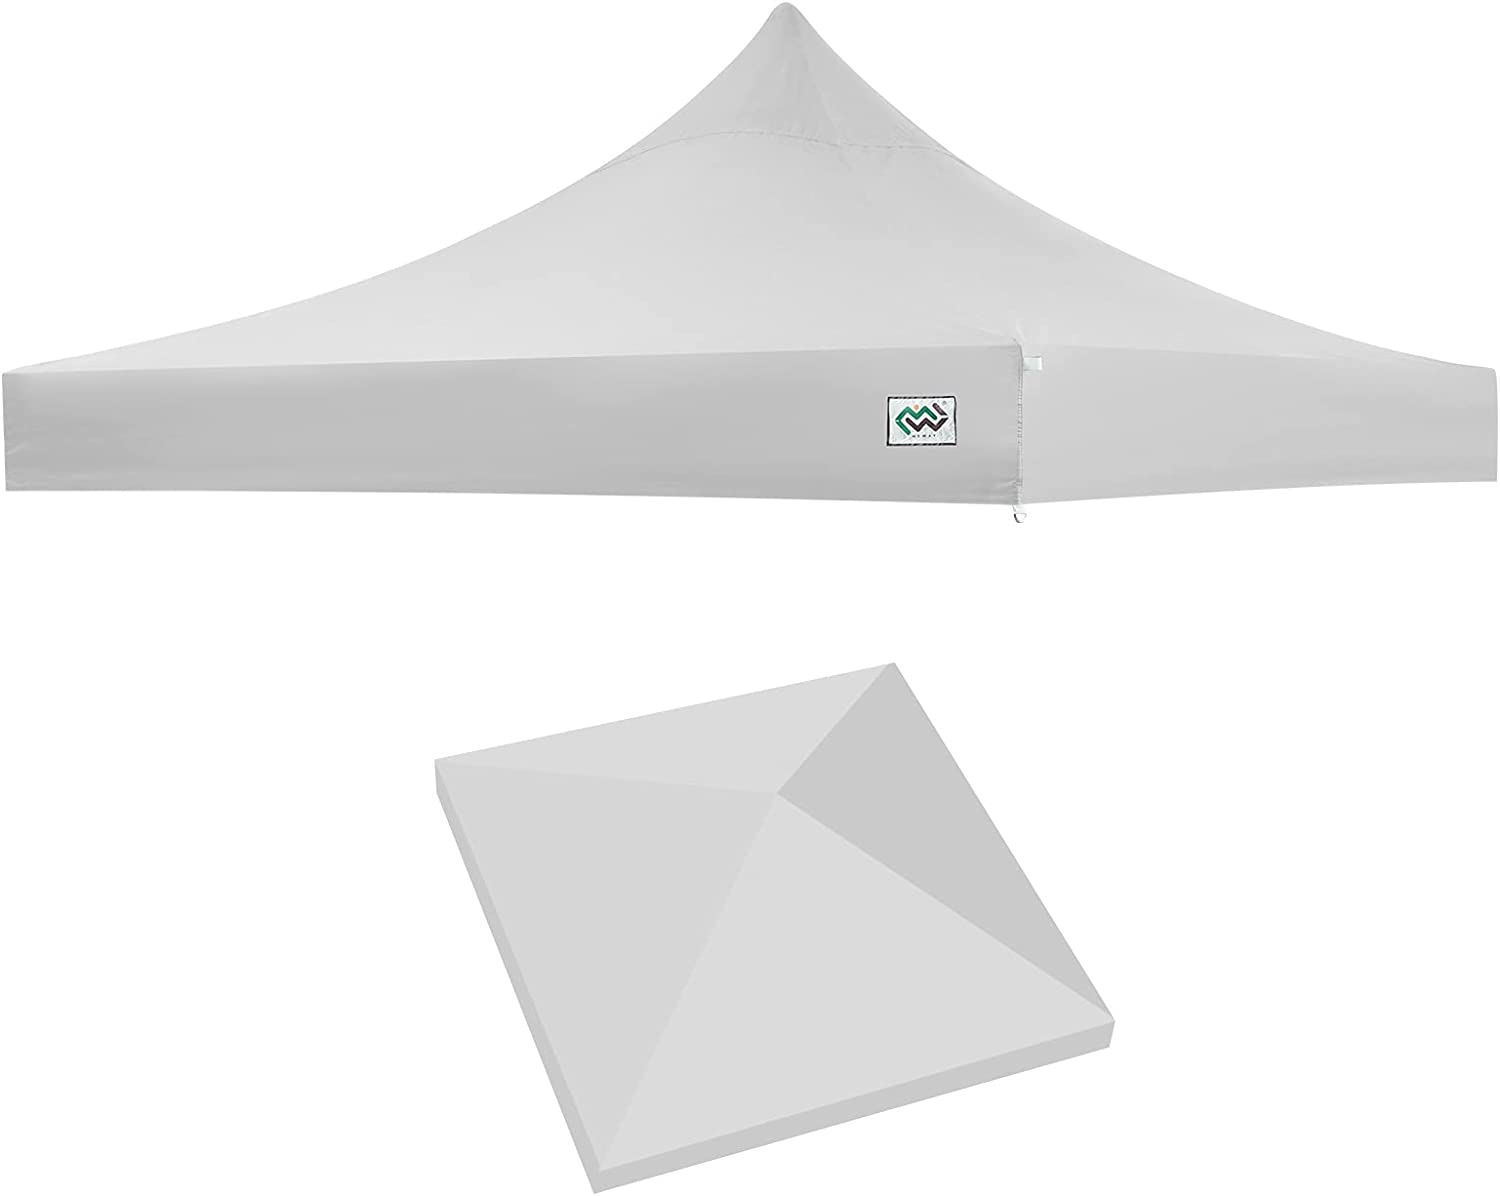 MEWAY 10x10 Pop Up Canopy Top Cover Ins Tent Max 75% OFF Max 68% OFF Replacement